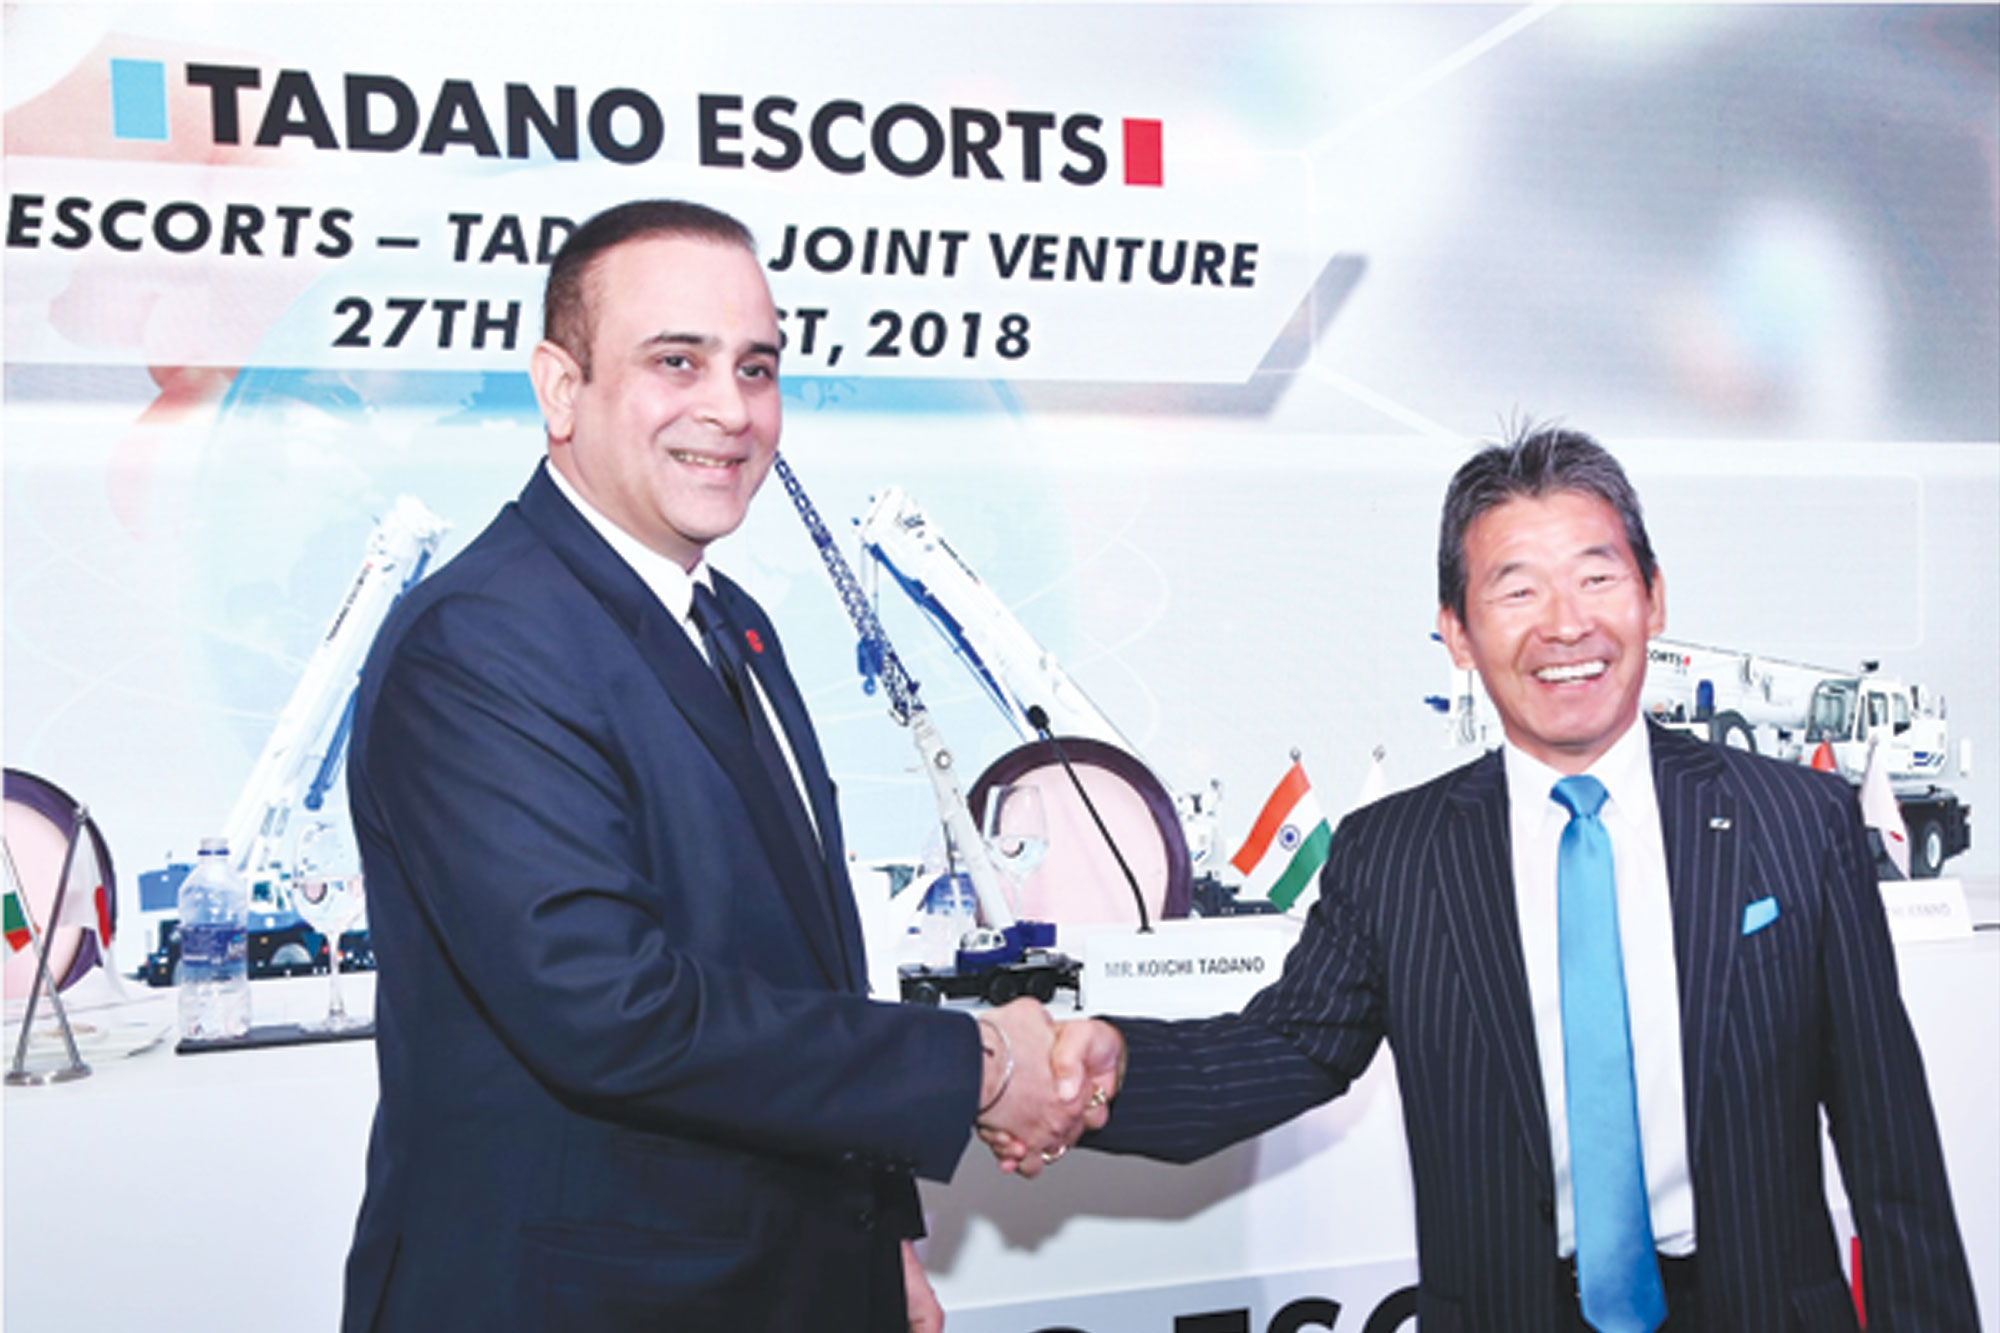 Escorts joins hands with Tadano group for mobile cranes